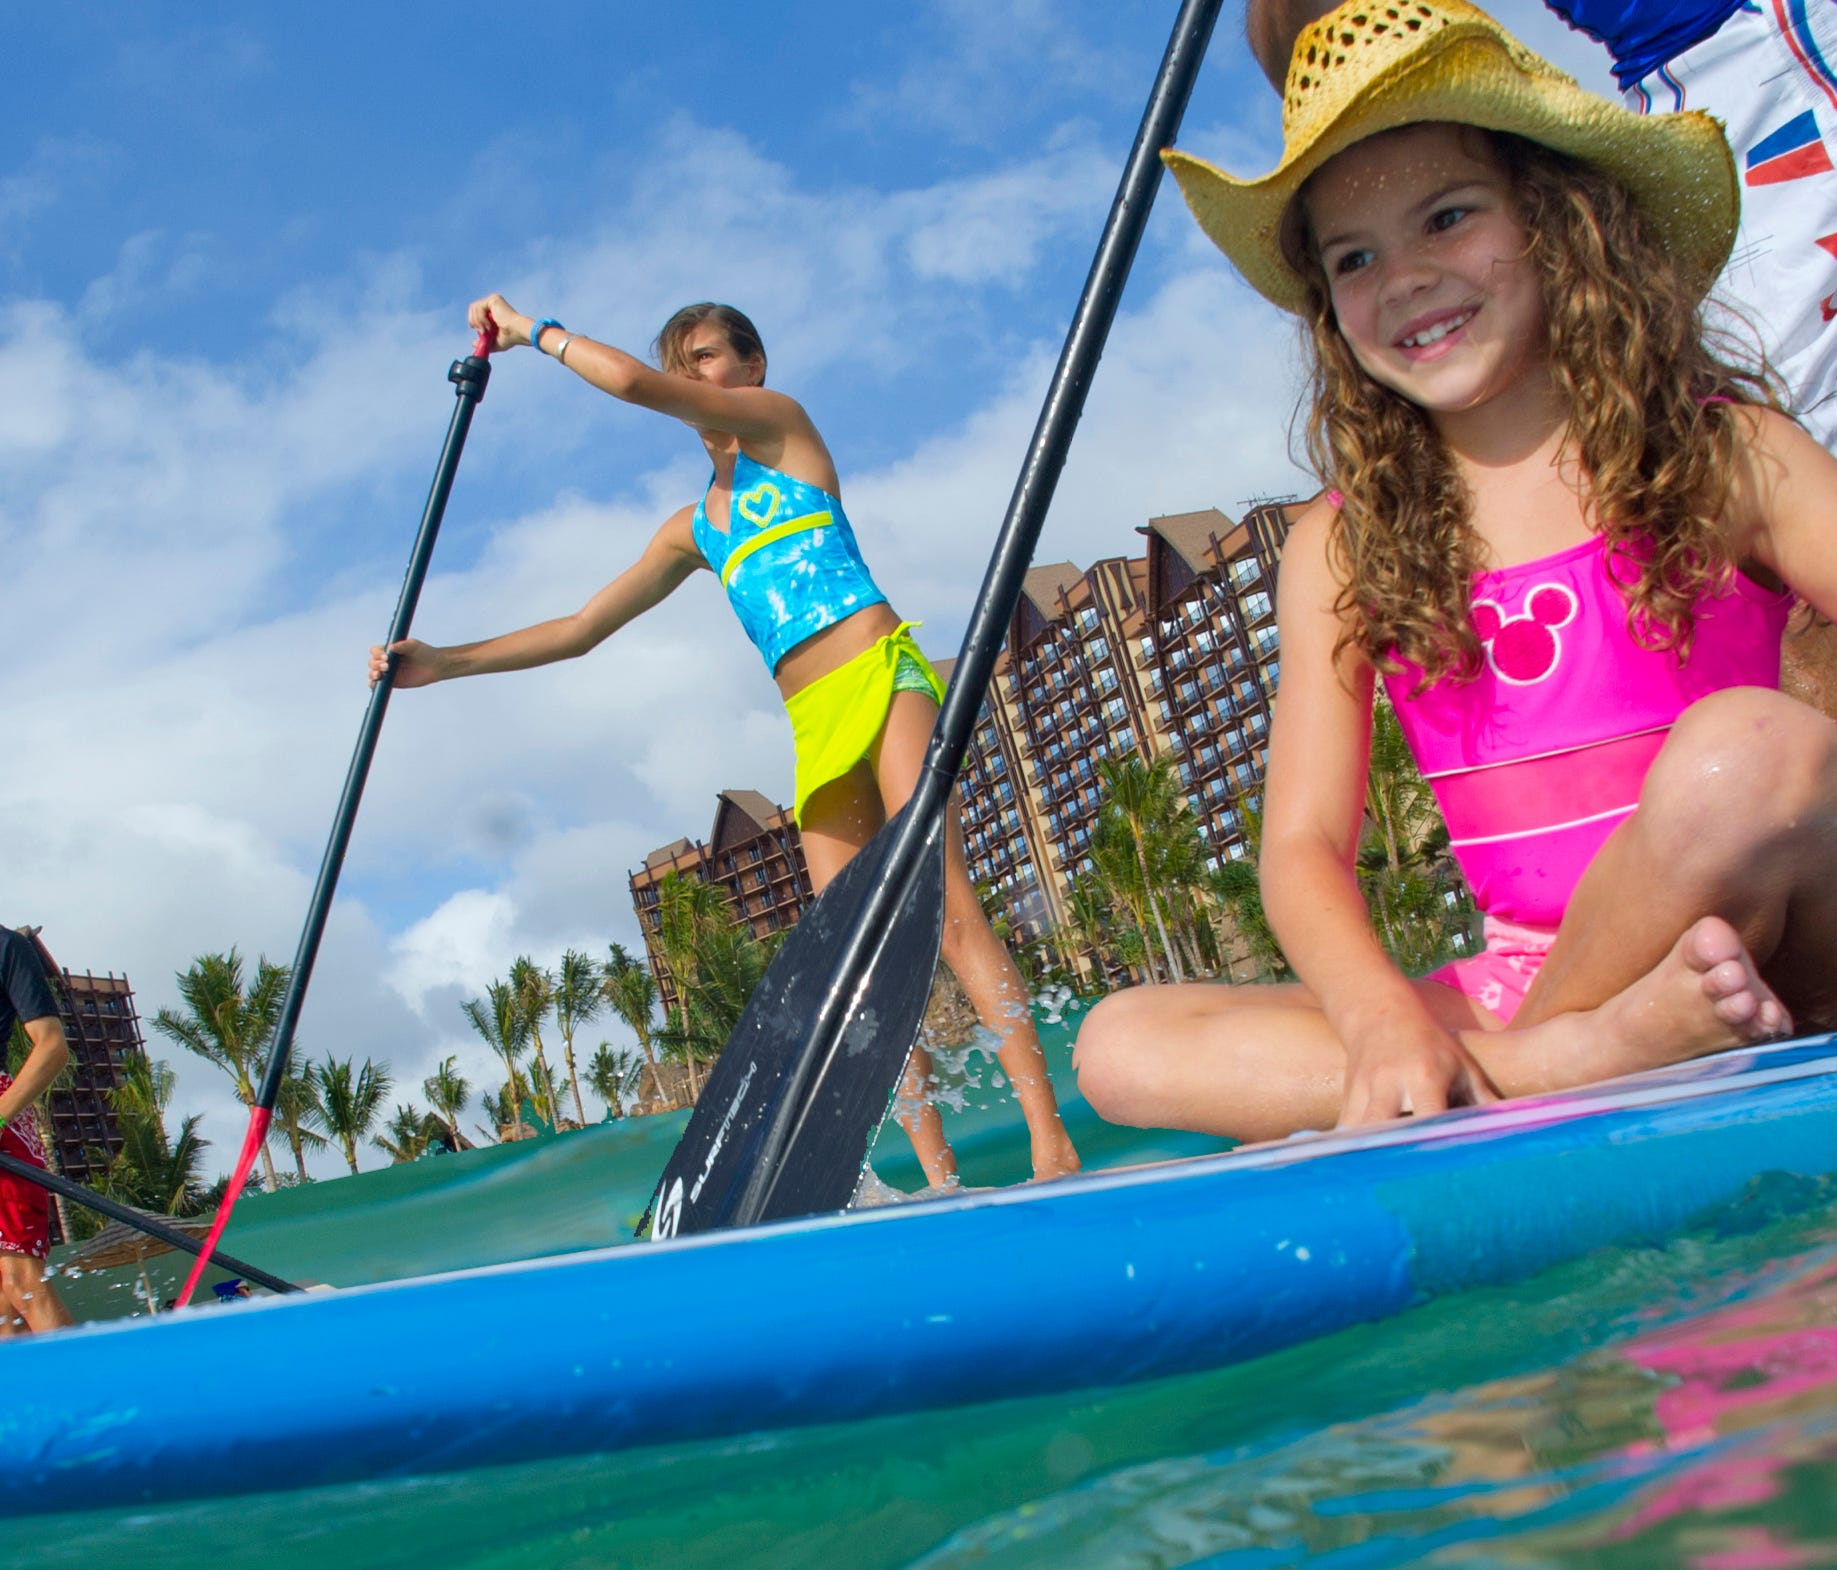 STANDING PADDLE BOARD, AULANI LAGOON -- With its fun recreation features and restaurants, its comfortable rooms, and its combination of Disney magic with Hawaiian beauty, tradition and relaxation, Aulani, a Disney Resort & Spa in HawaiÔi, offers a ne